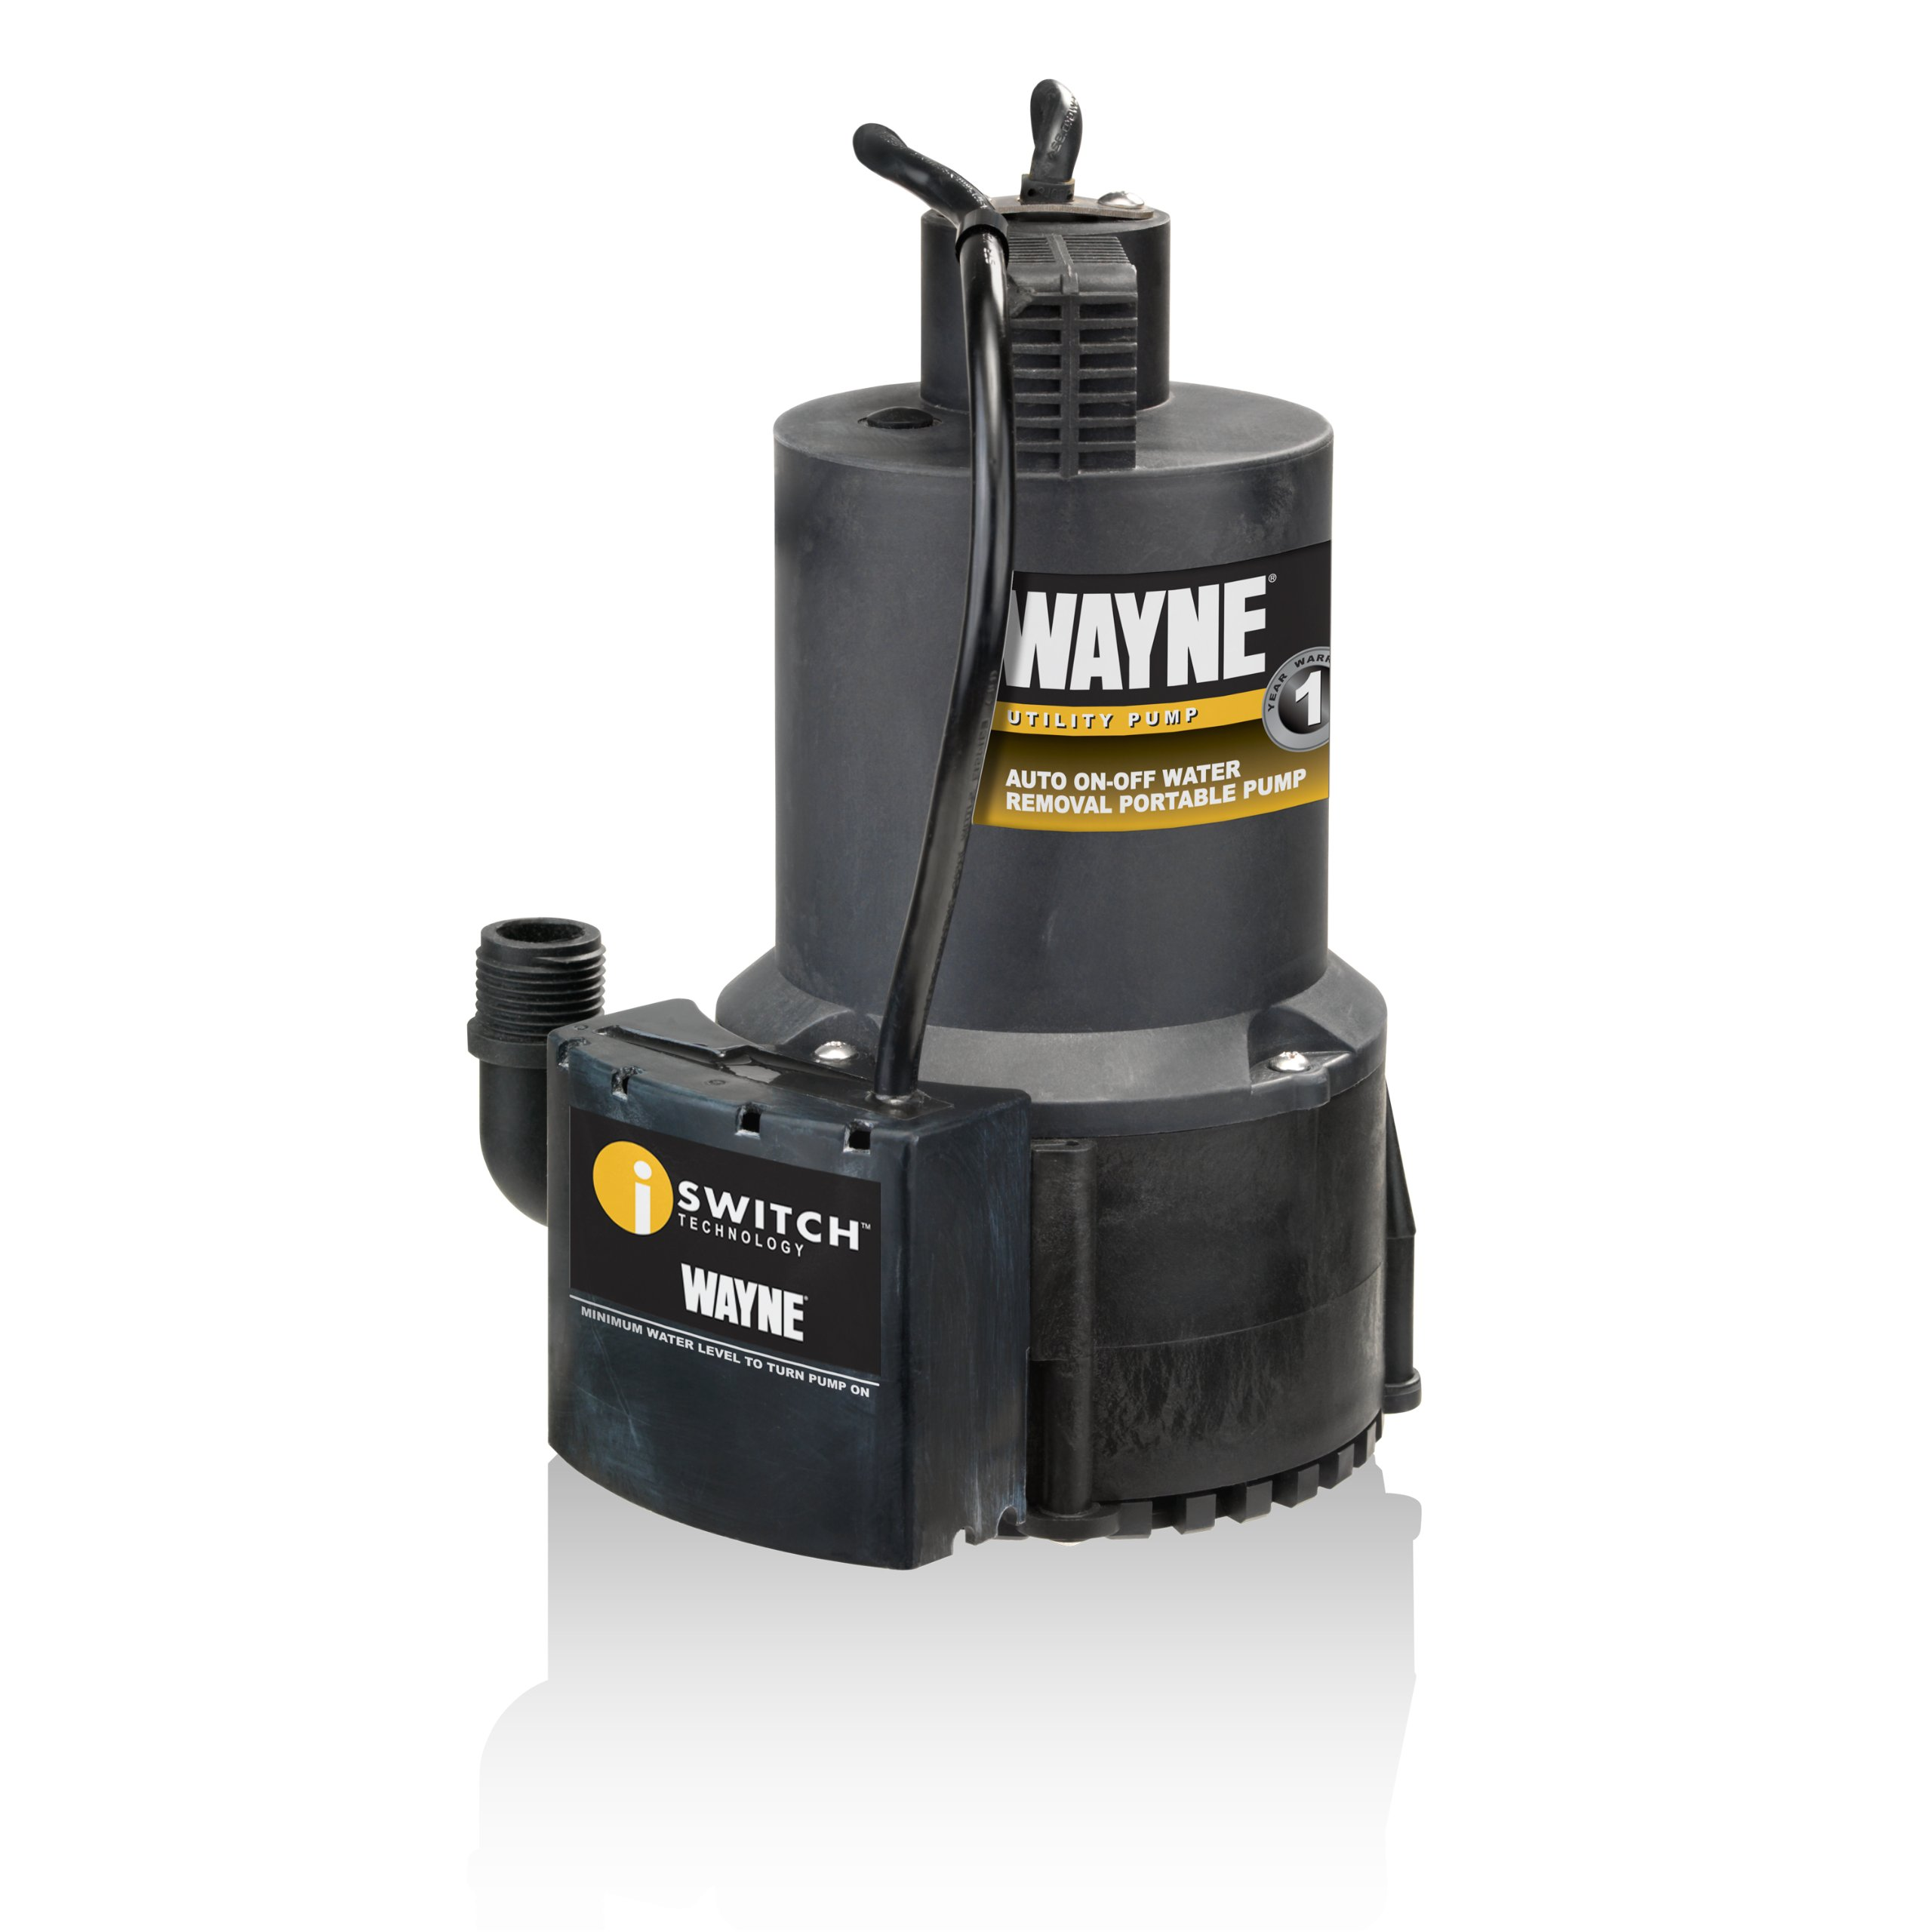 Wayne 57729-WYN1 EEAUP250 1/4 HP Automatic ON/OFF Electric Water Removal Pump by Wayne